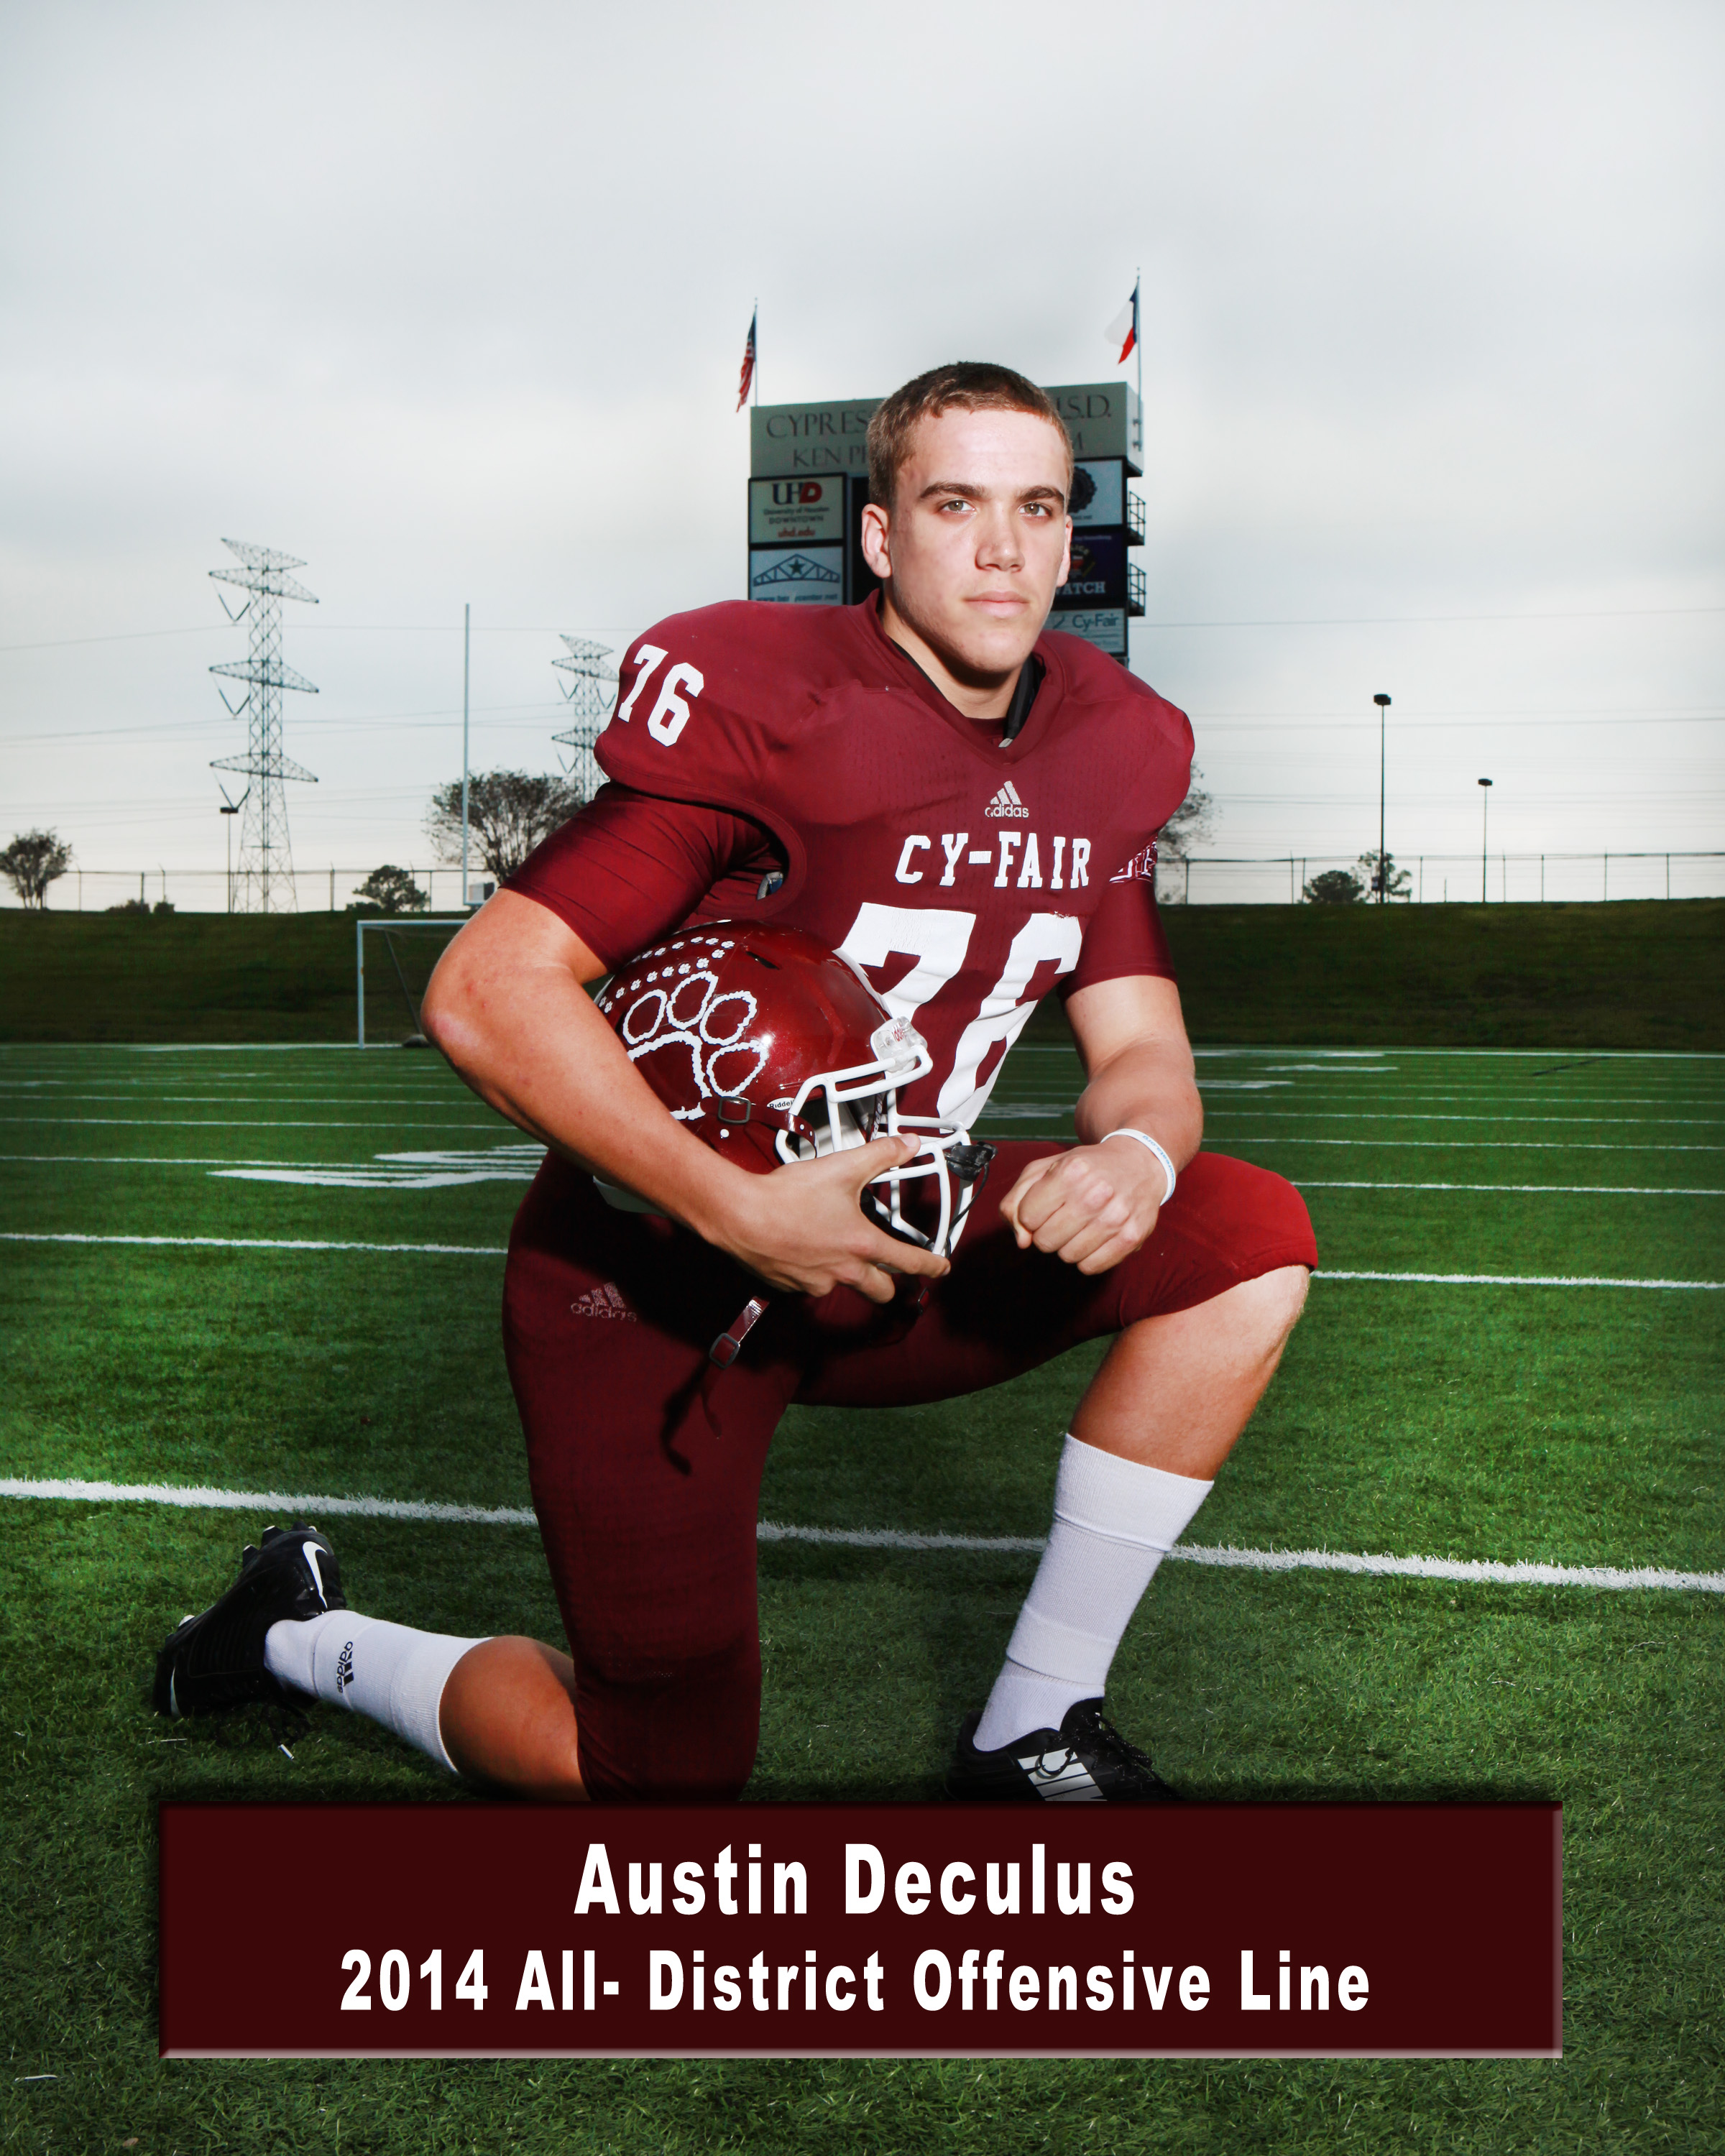 Austin Deculus - 2017 OT - Cy-Fair HS, Cypress, TX (Photo courtesy of Cyfairfootball.com)